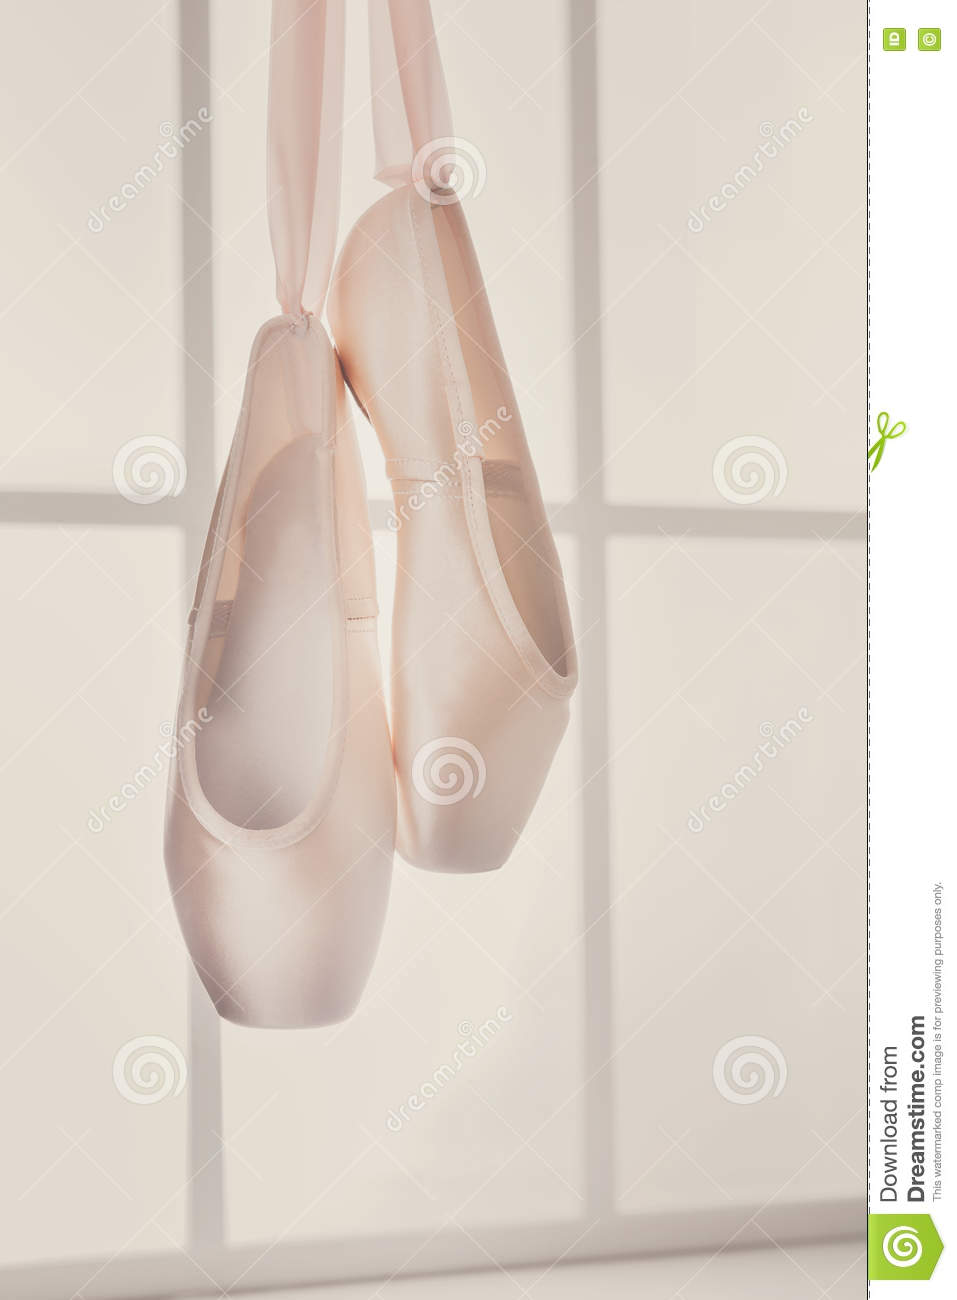 d28508dad273 Pastel pink ballet shoes background. New pointe shoes with satin ribbon  hanging on window, high-key soft toning, vertical image